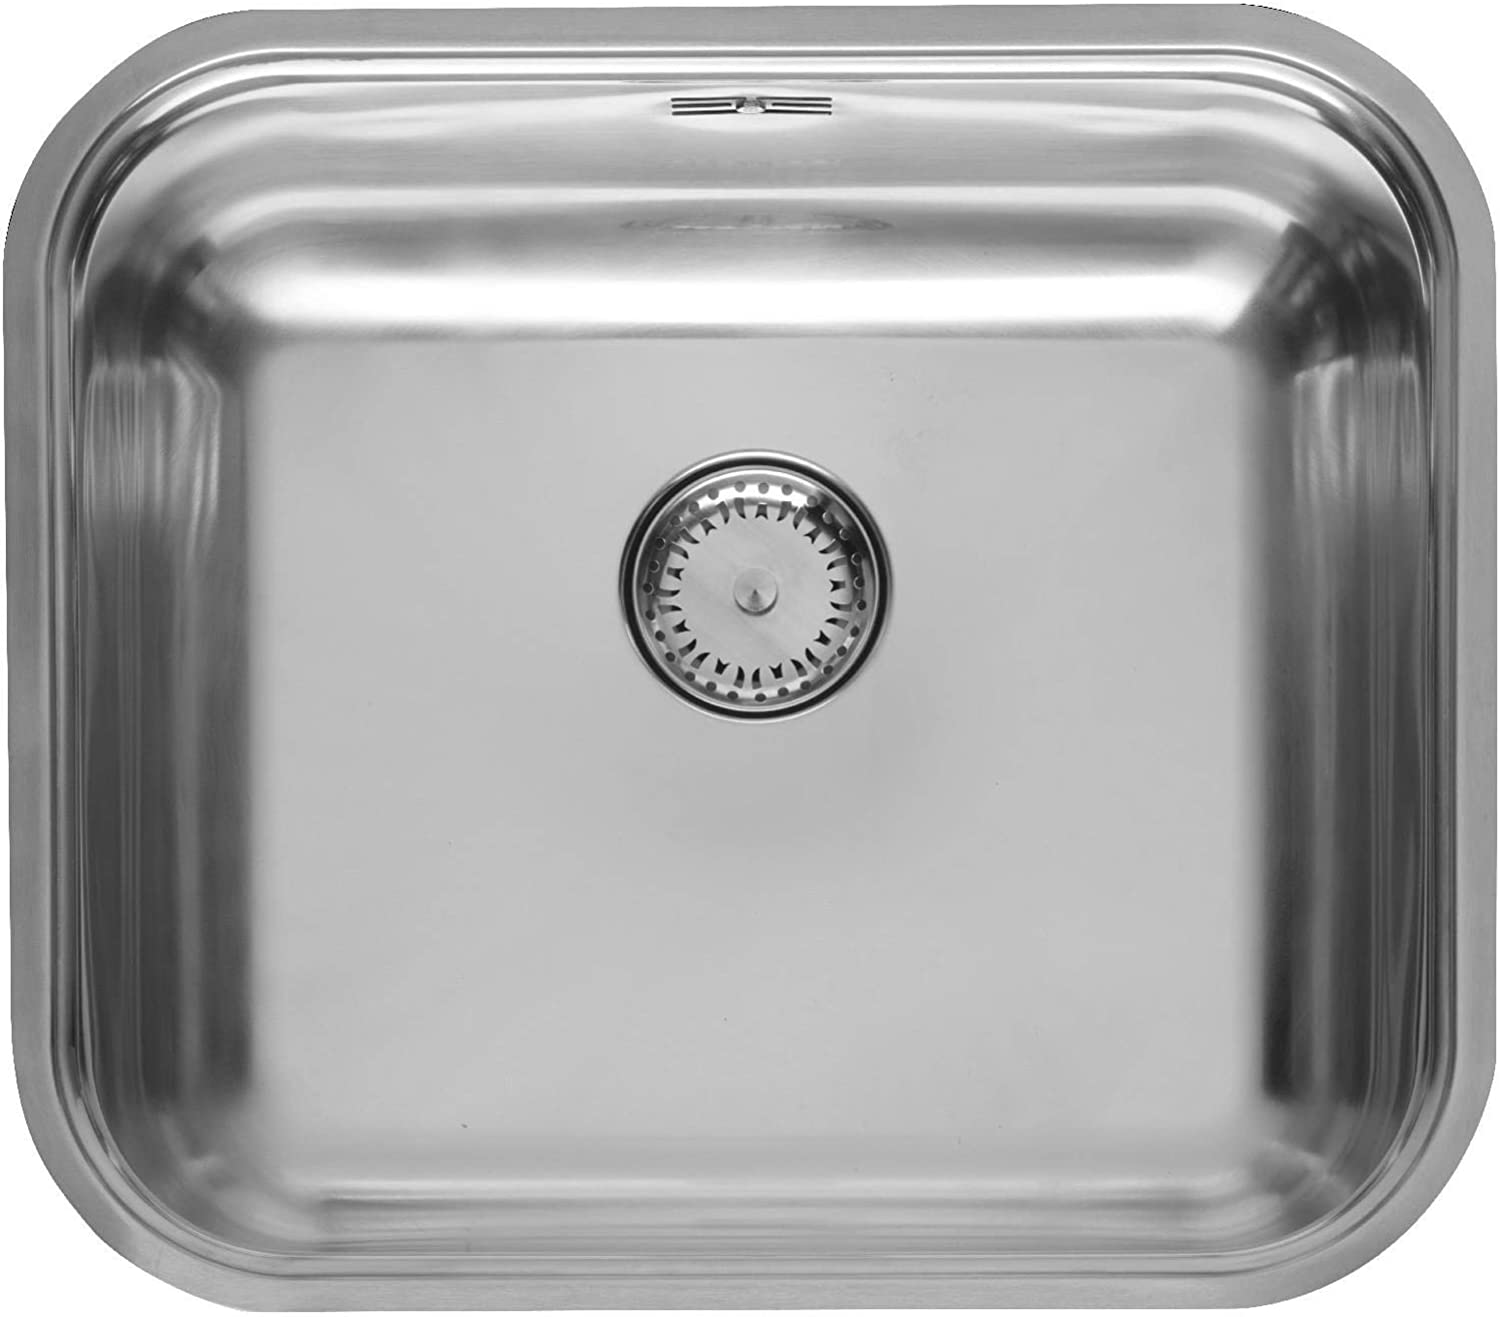 44.5cm x 39.3cm Integrated Single Bowl Sink in Stainless Steel